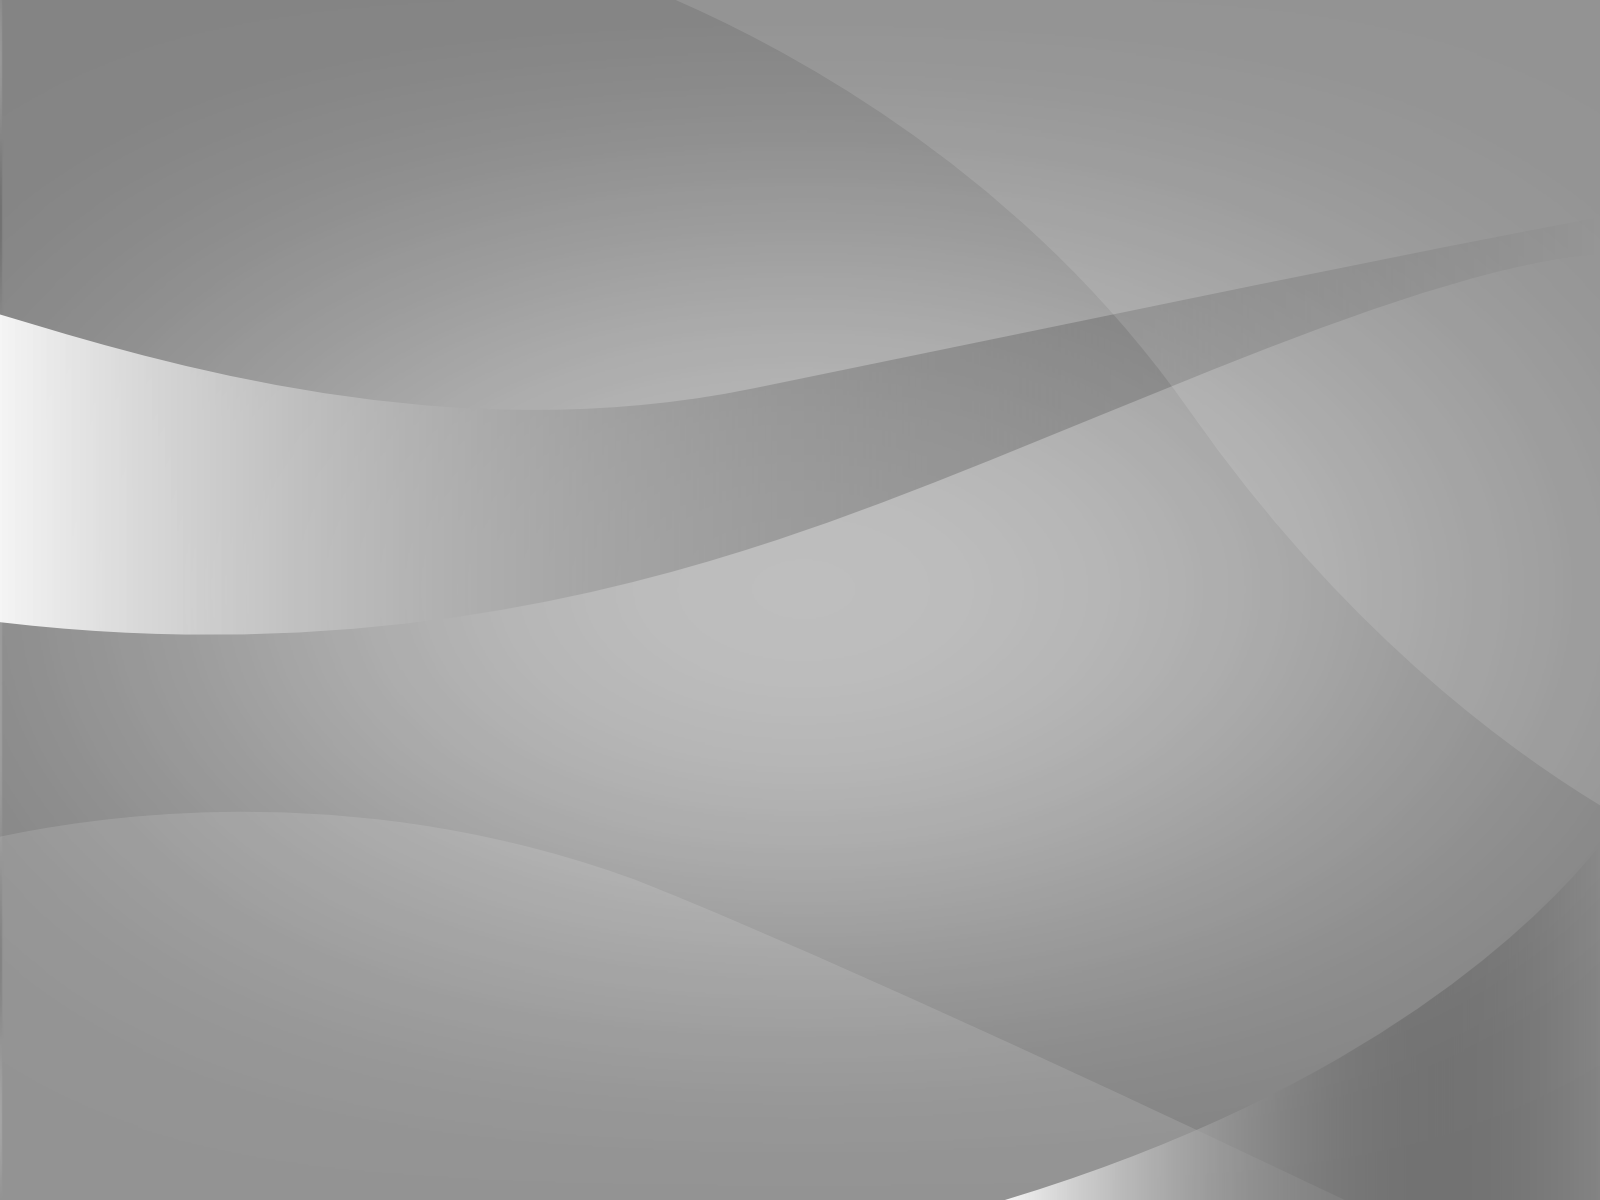 Abstract Grey Wallpaper   Download The Free Abstract Grey Wallpaper Wallpaper